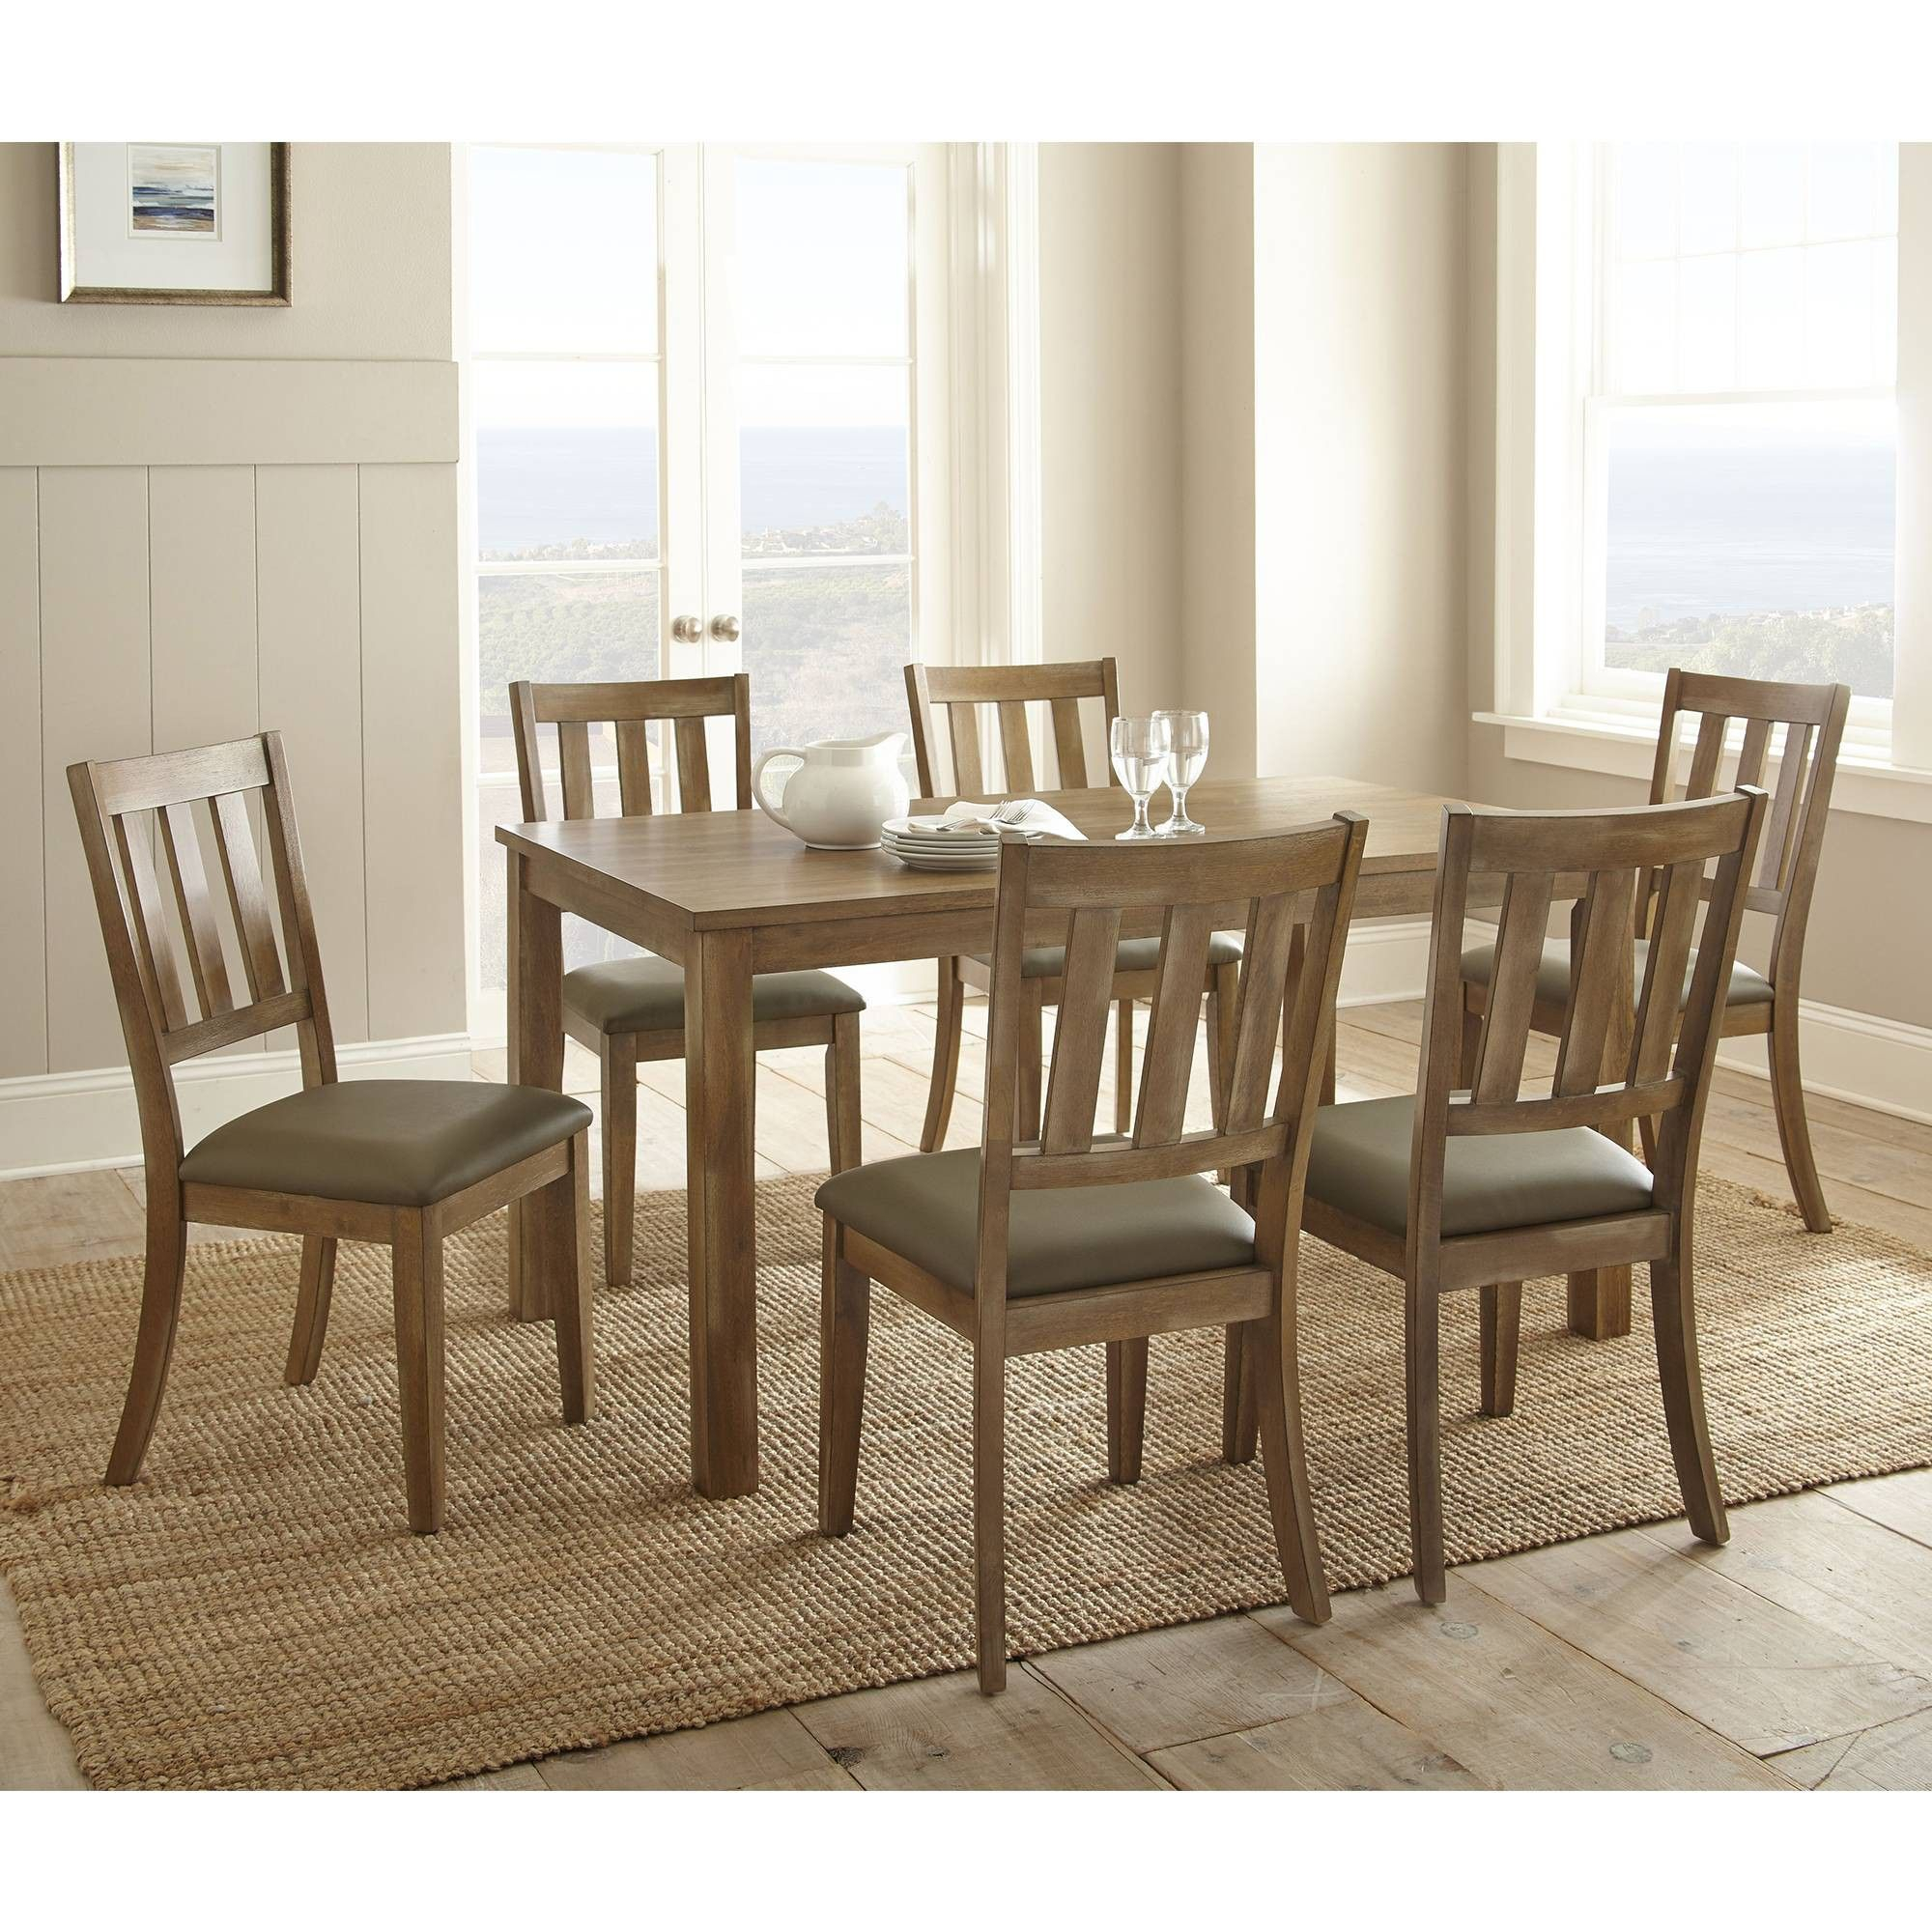 7Pc Ander Dining Set Washed Pine – Steve Silver In 2019 | Home Within Current Middleport 5 Piece Dining Sets (View 10 of 20)